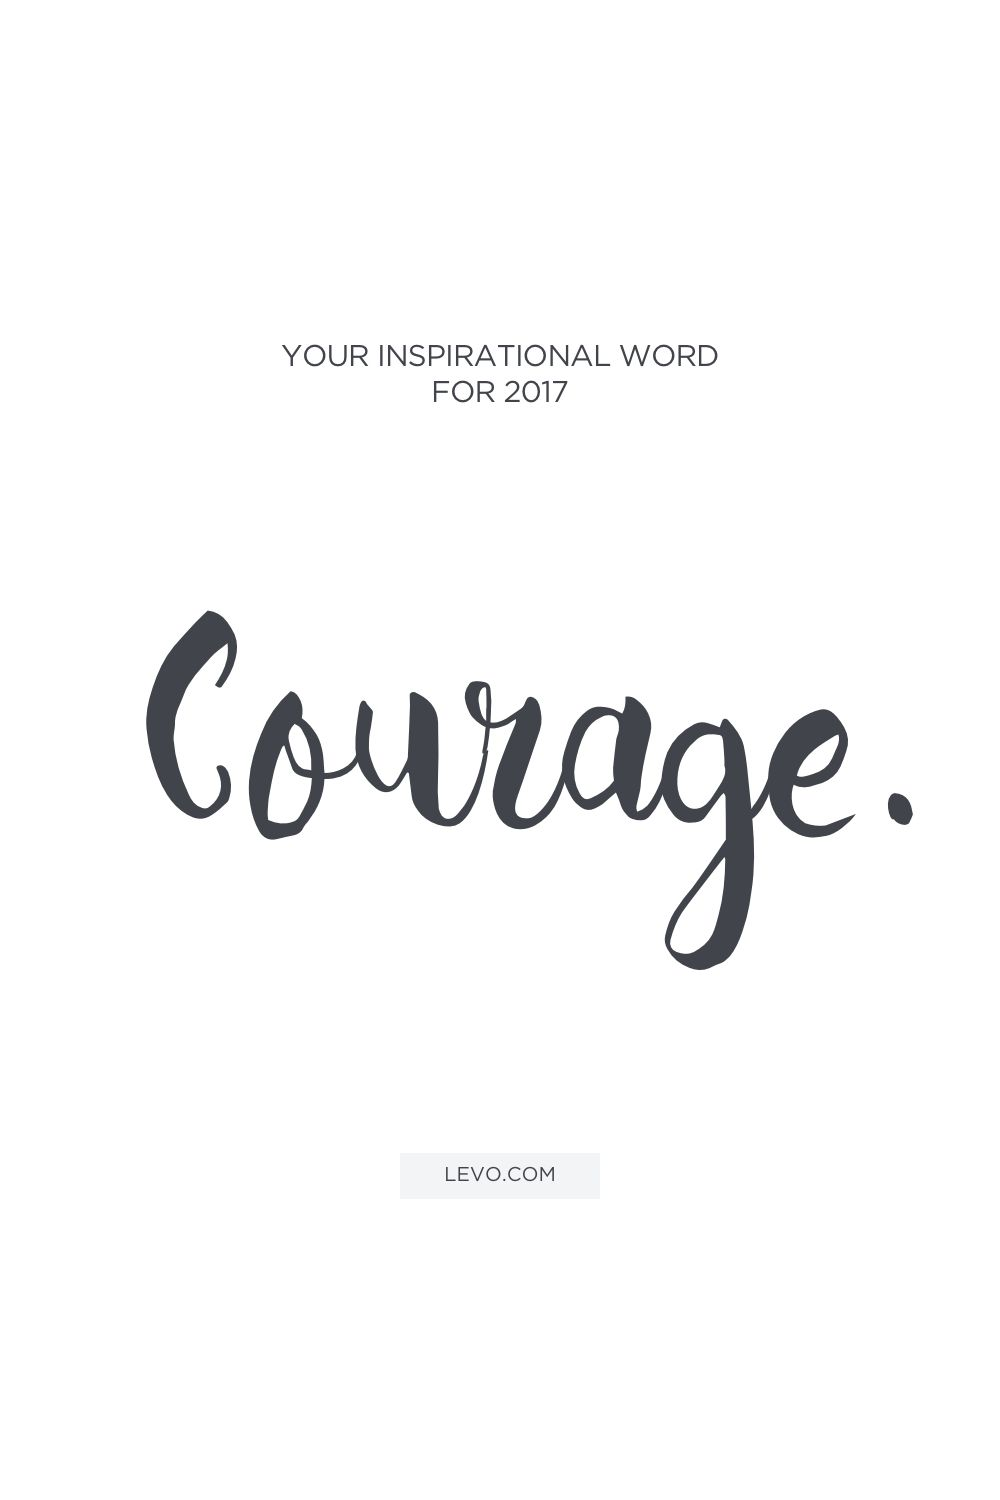 Courage inspirational words personal development ideas and self improvement tips